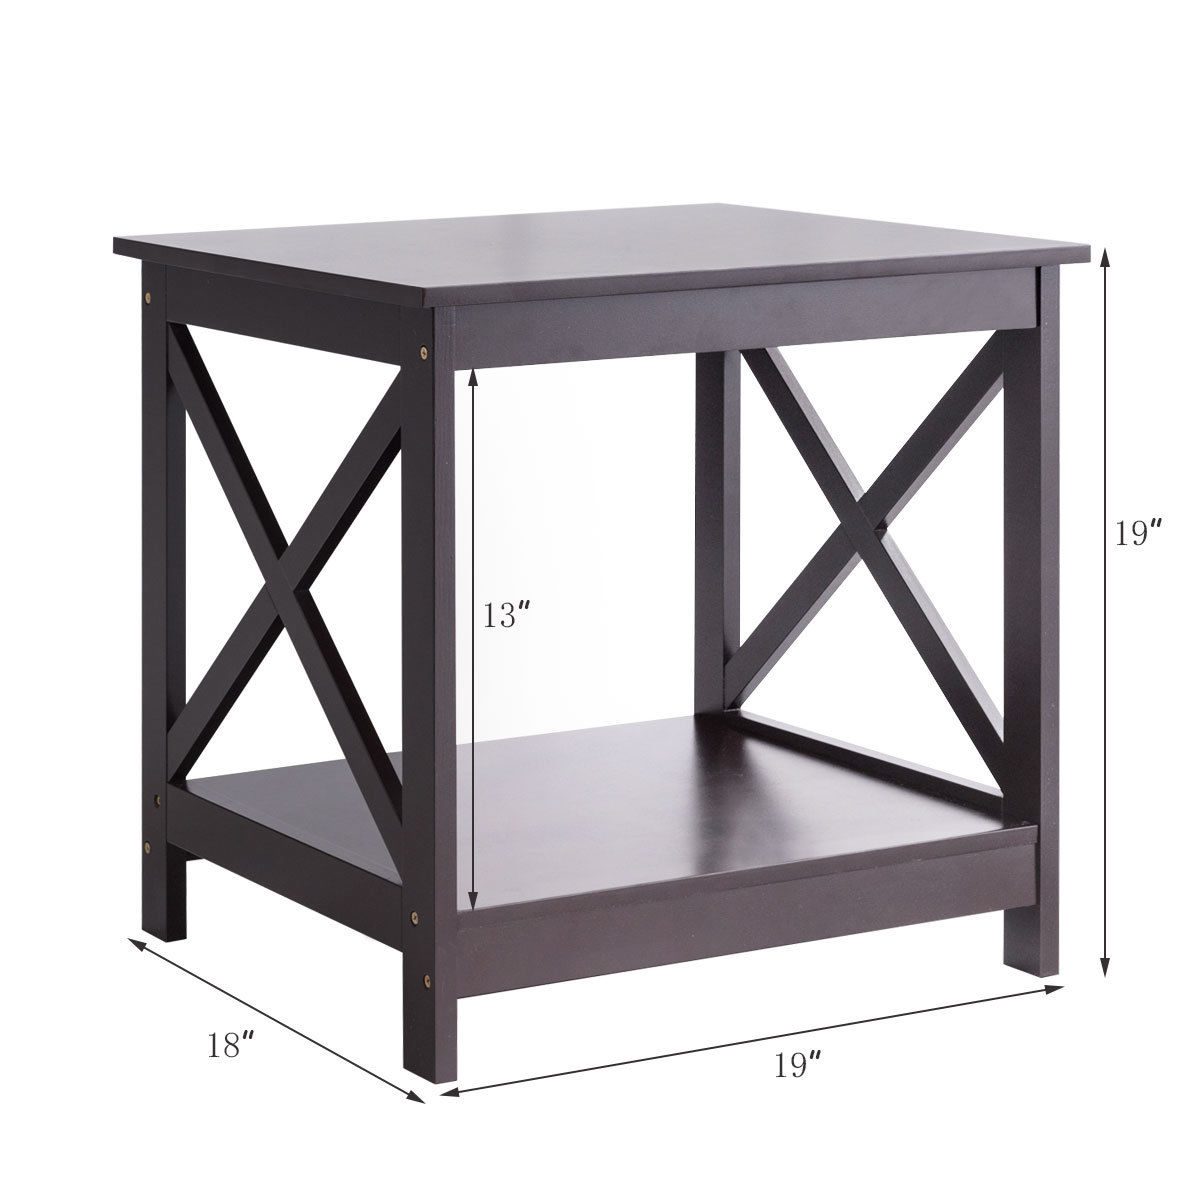 Costway End Table X Design Display Shelves Accent Sofa Side Nightstand Brown 1